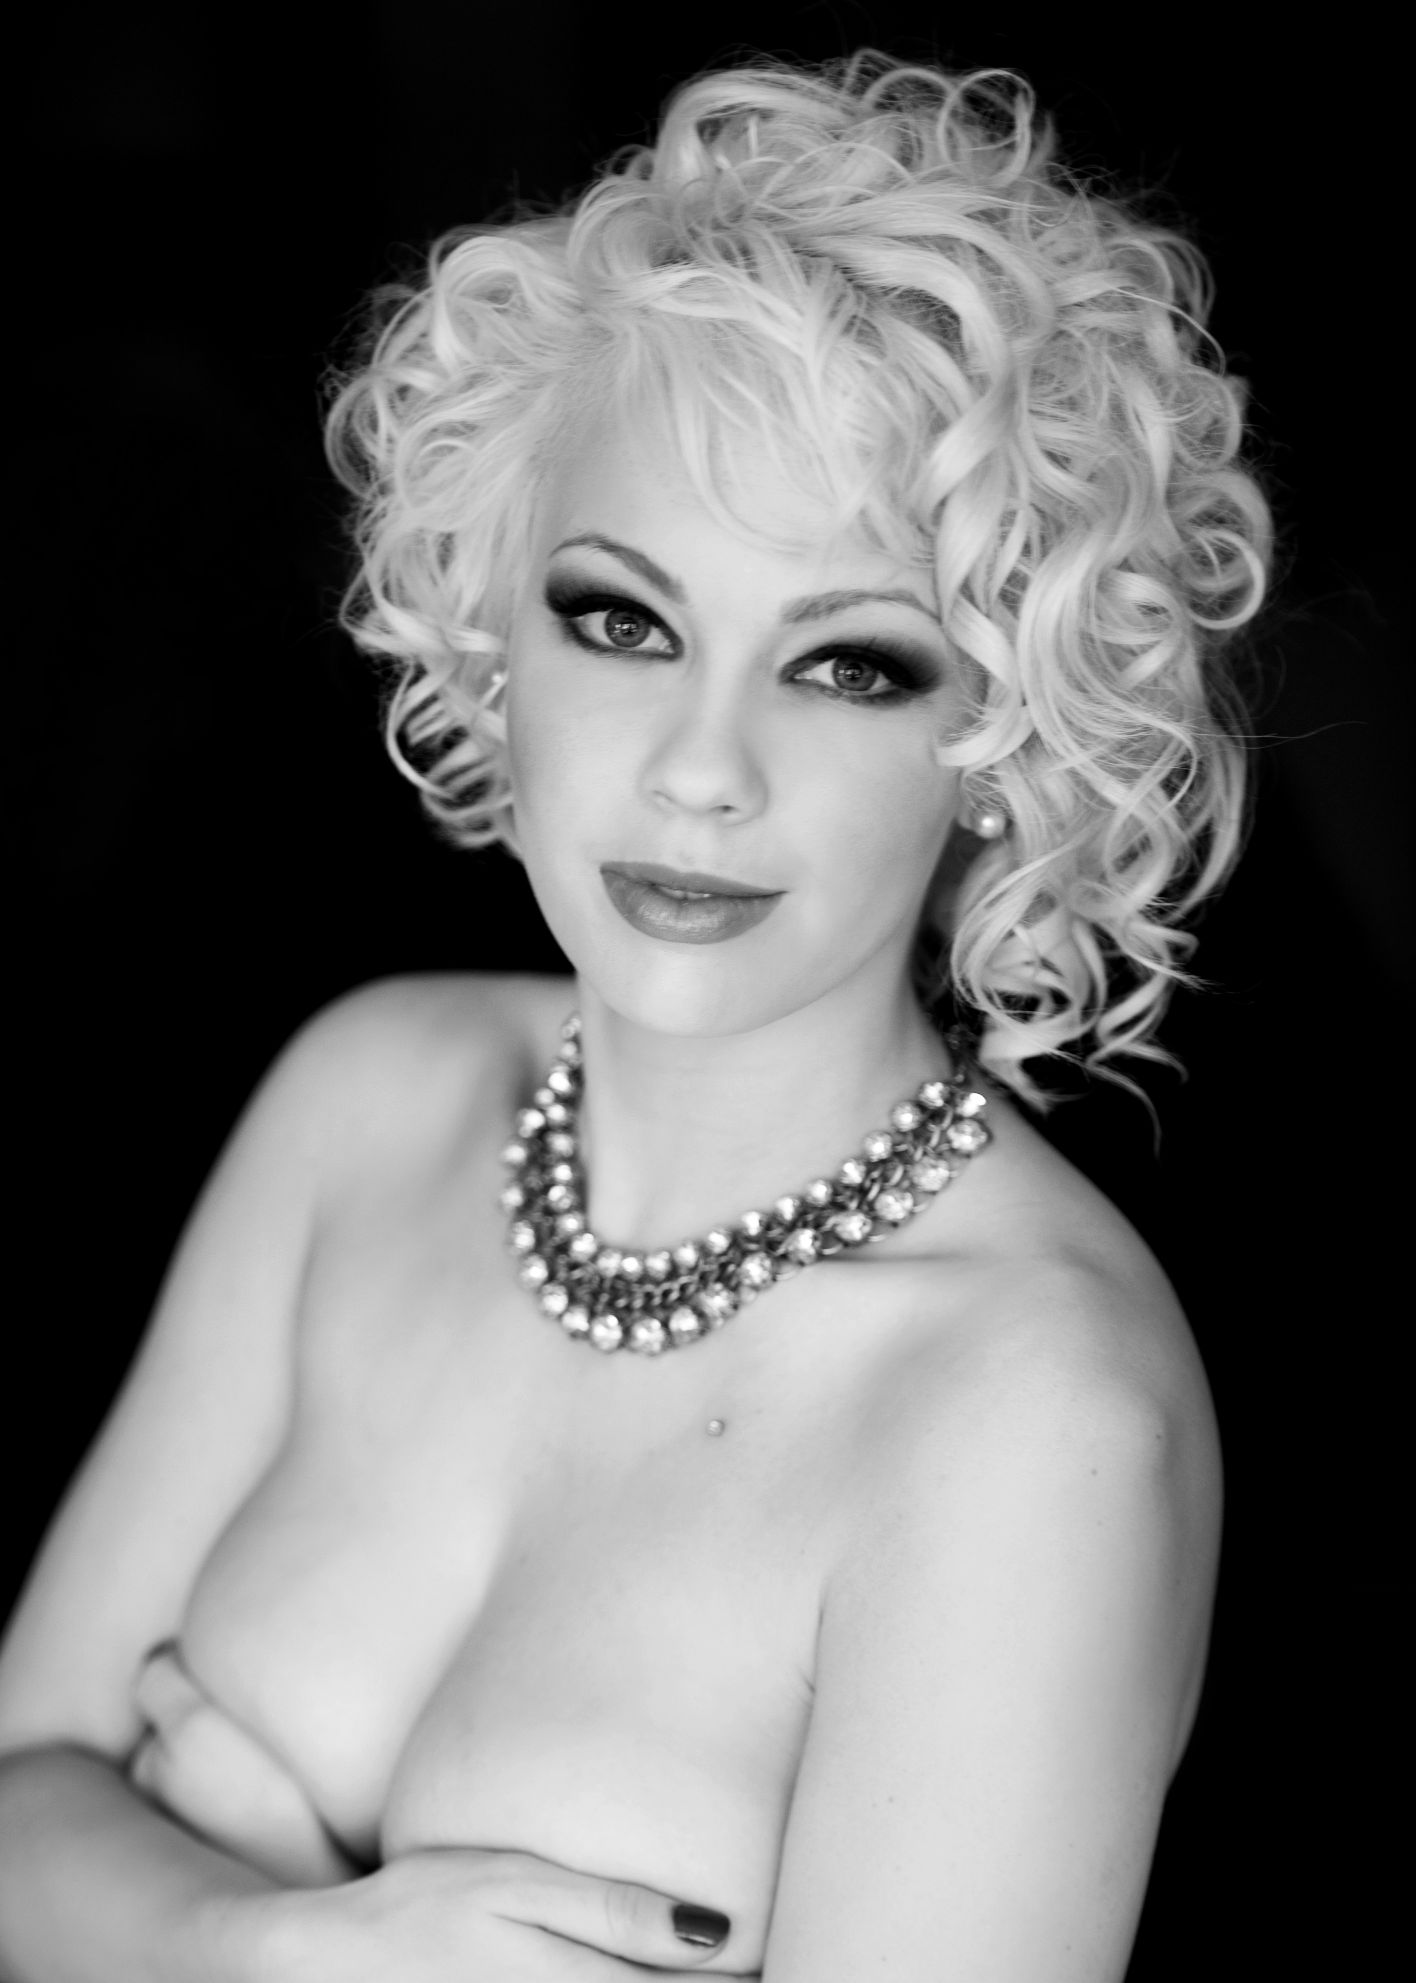 Boudoir photography vanouver beautiful women black and white photography mariyn monroe